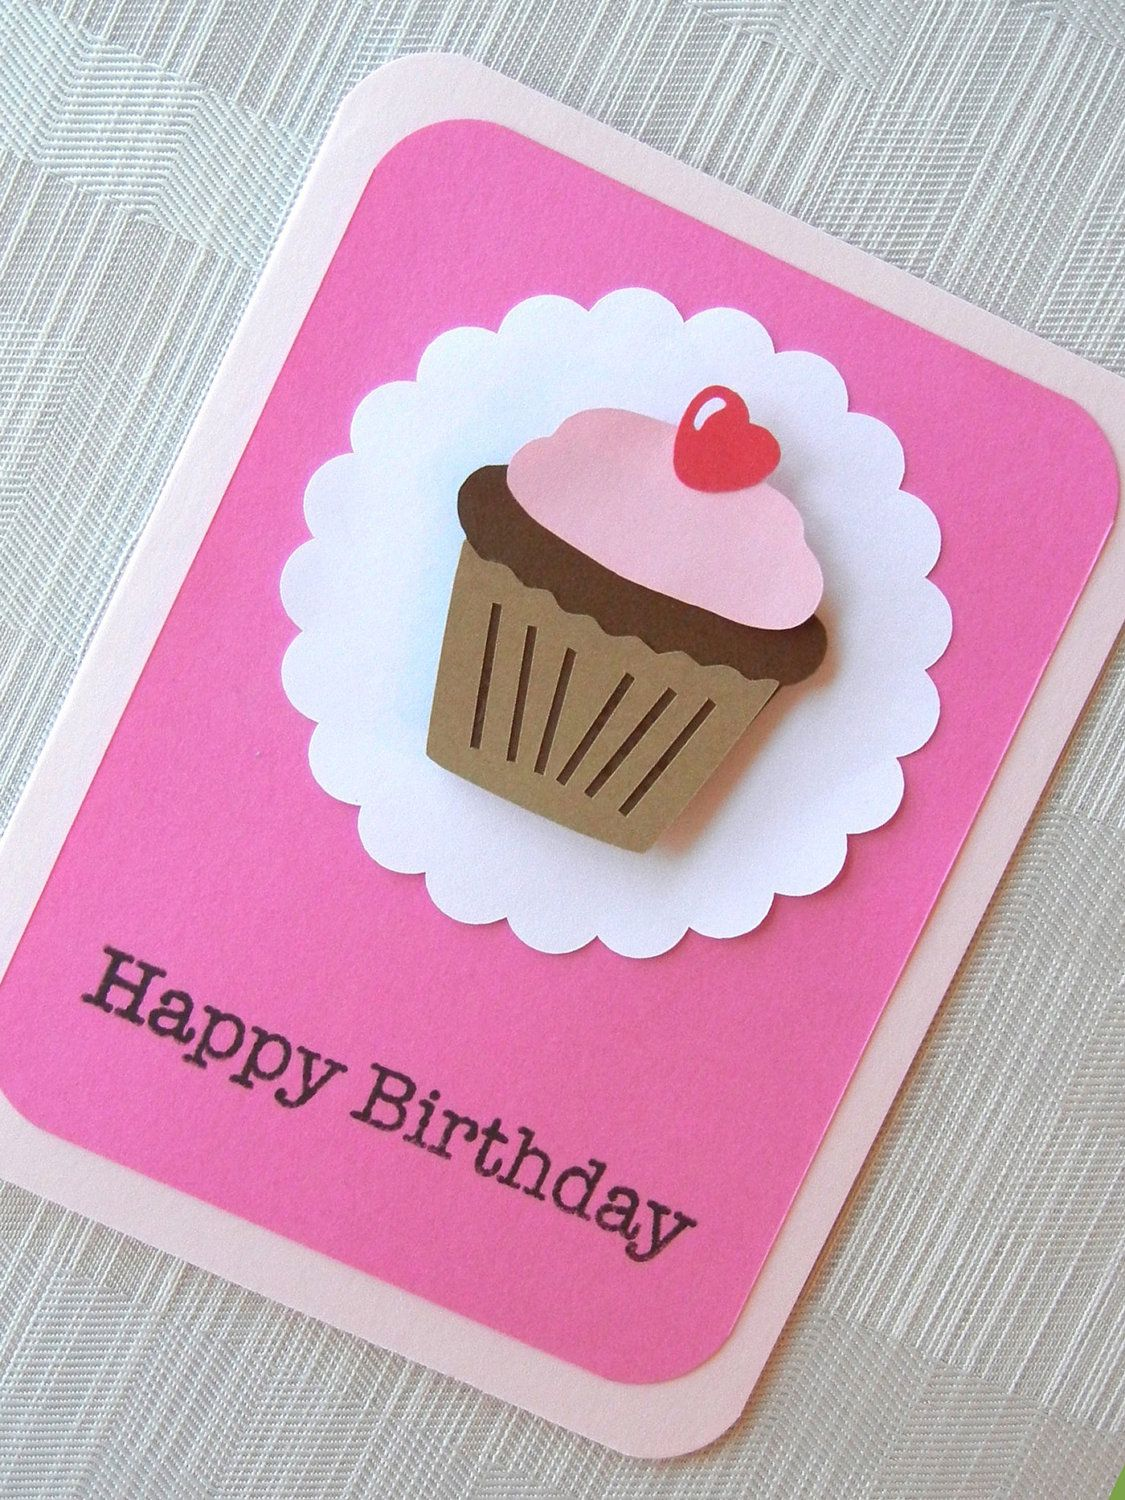 √41+ Handmade Birthday Card Ideas With Images and Steps ...